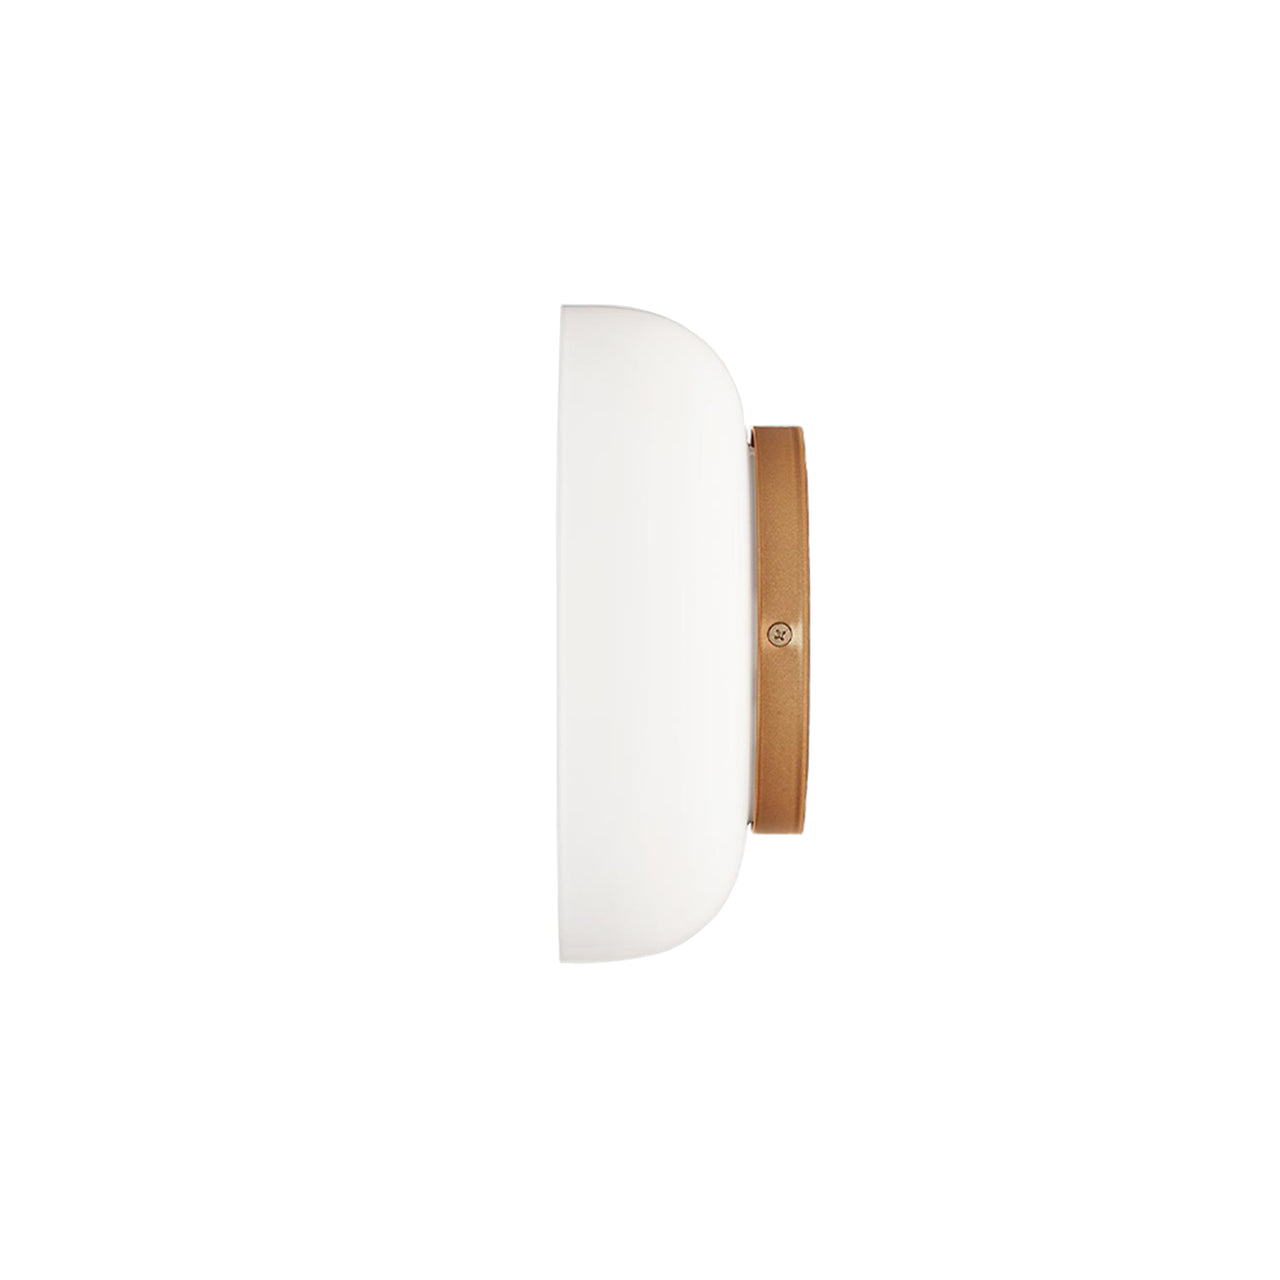 Blossi Wall + Ceiling Light: Opal